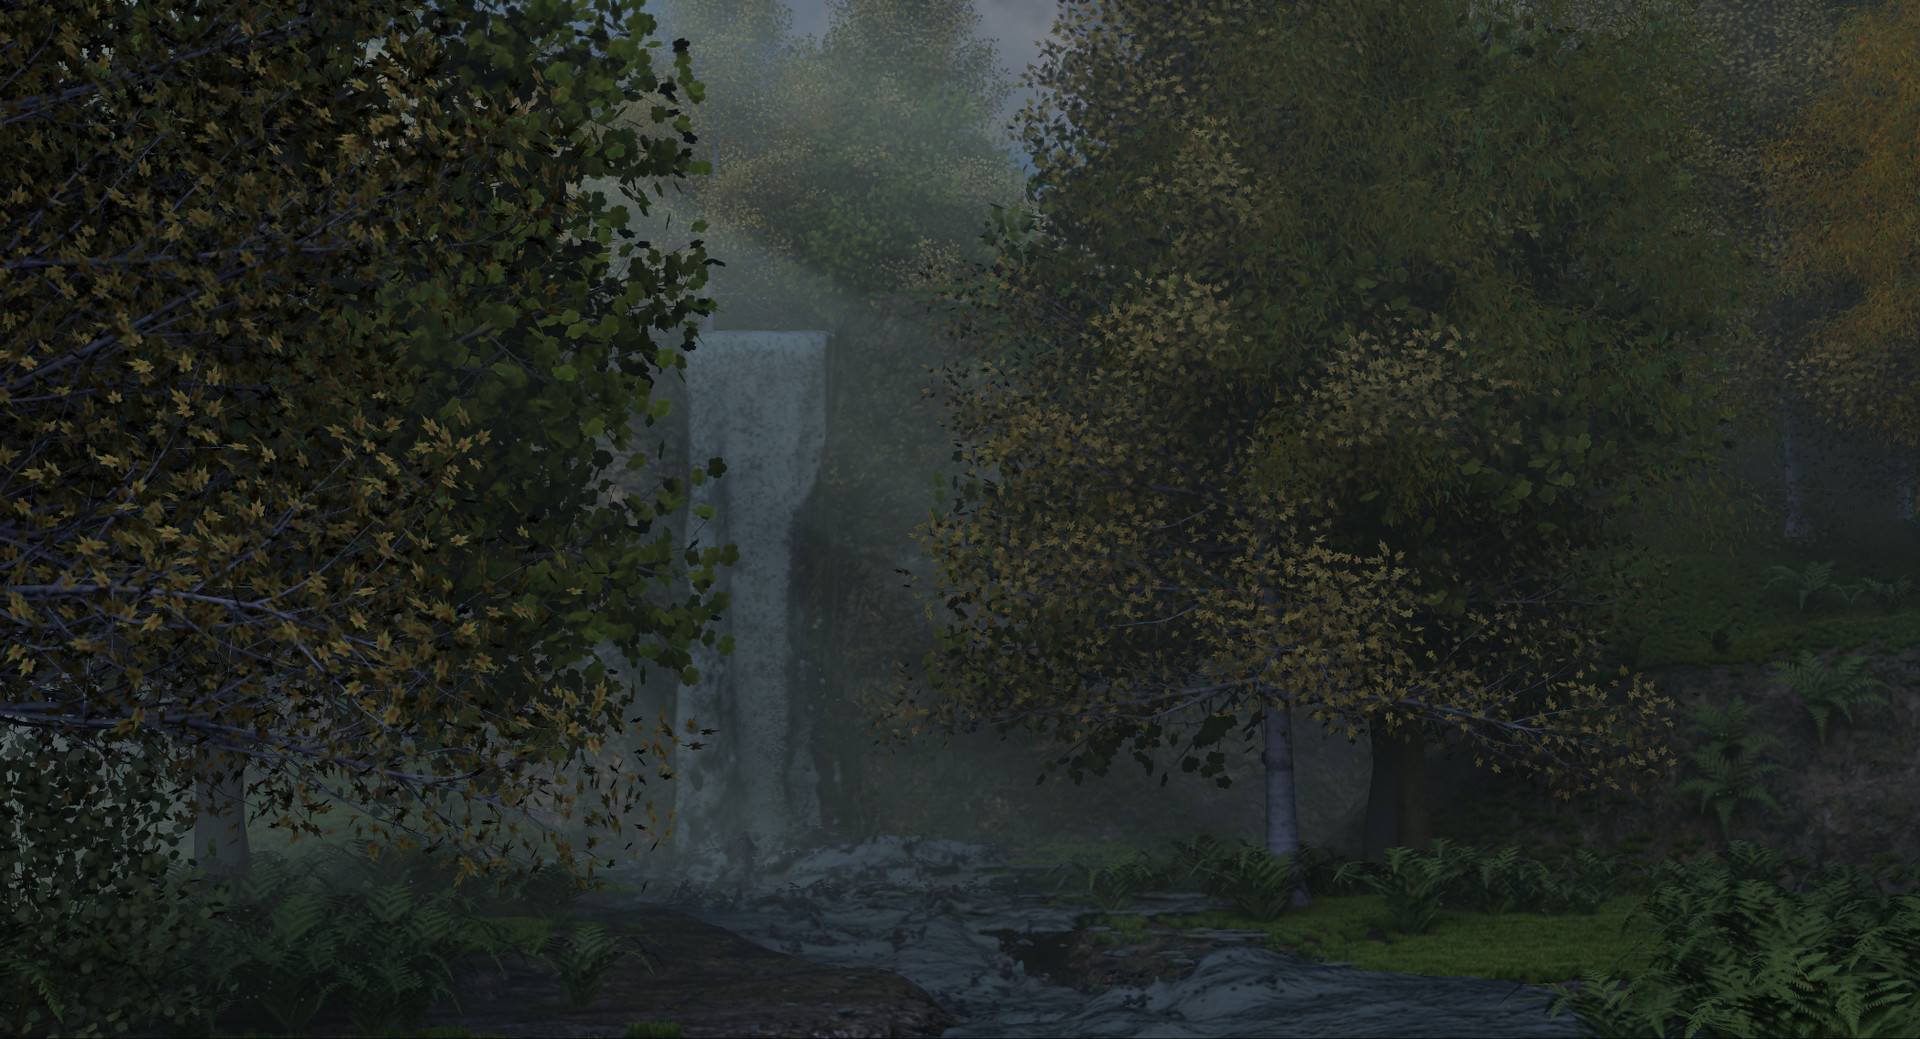 Waterfall in a forest (raw render)